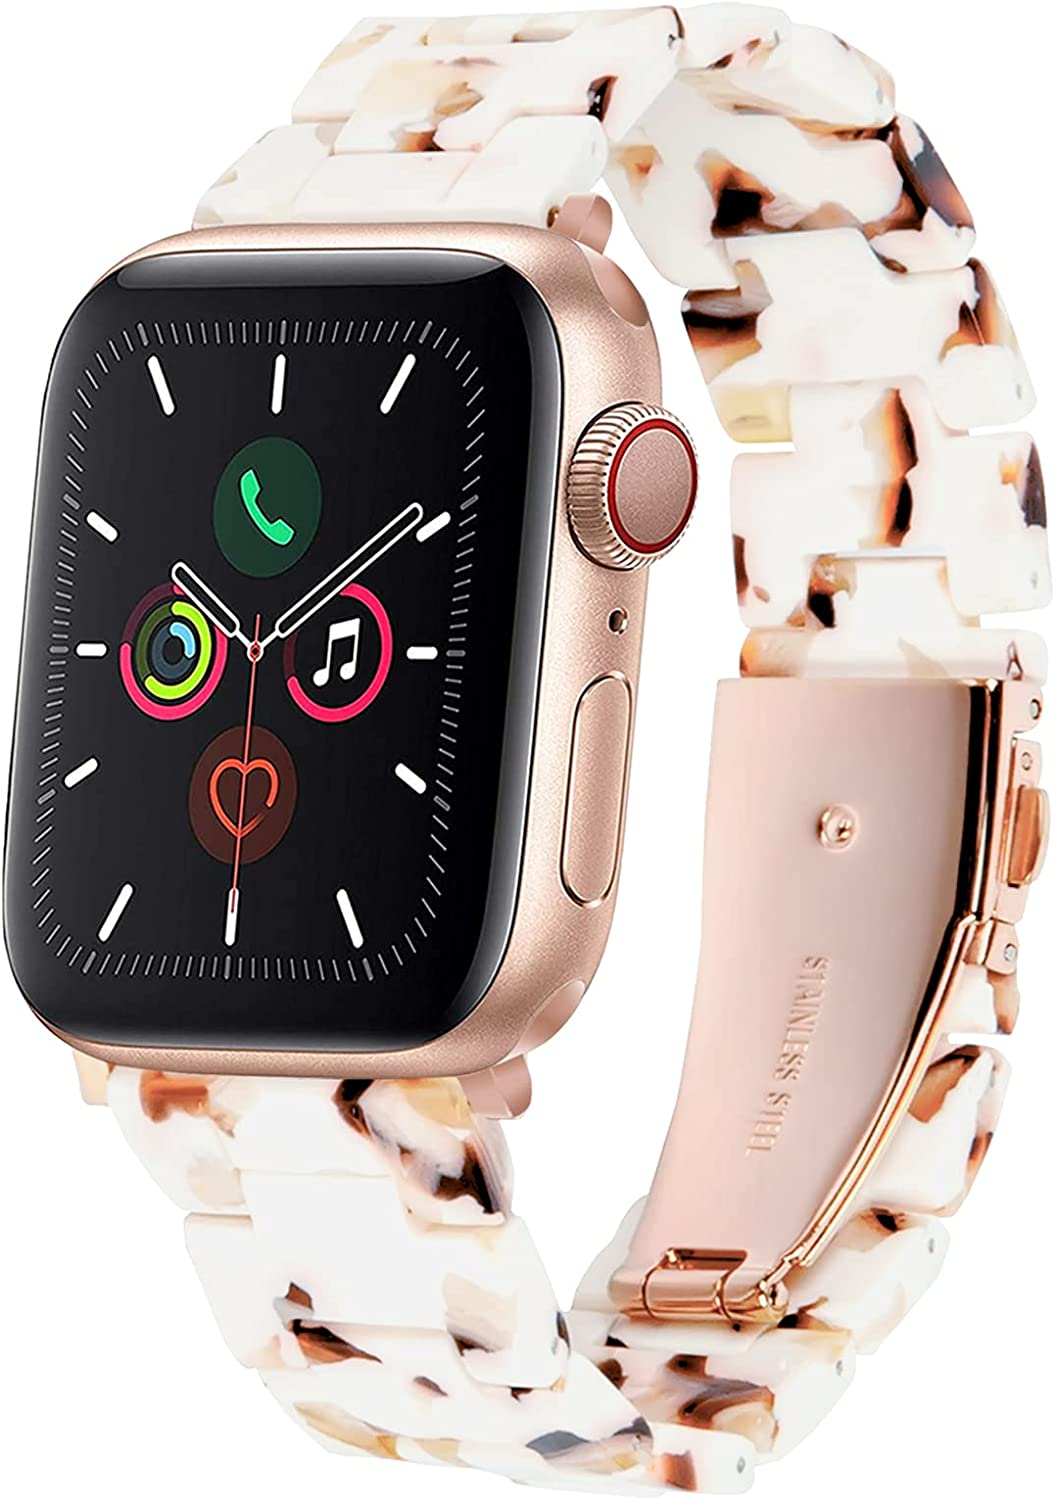 HOPO Compatible With Apple Watch Band 38mm 40mm 42mm 44mm Thin Light Resin Strap Bracelet With Stainless Steel Buckle Replacement For iWatch Series 6 5 4 3 2 1 SE (Nougat White/Rose Gold, 42/44 mm)